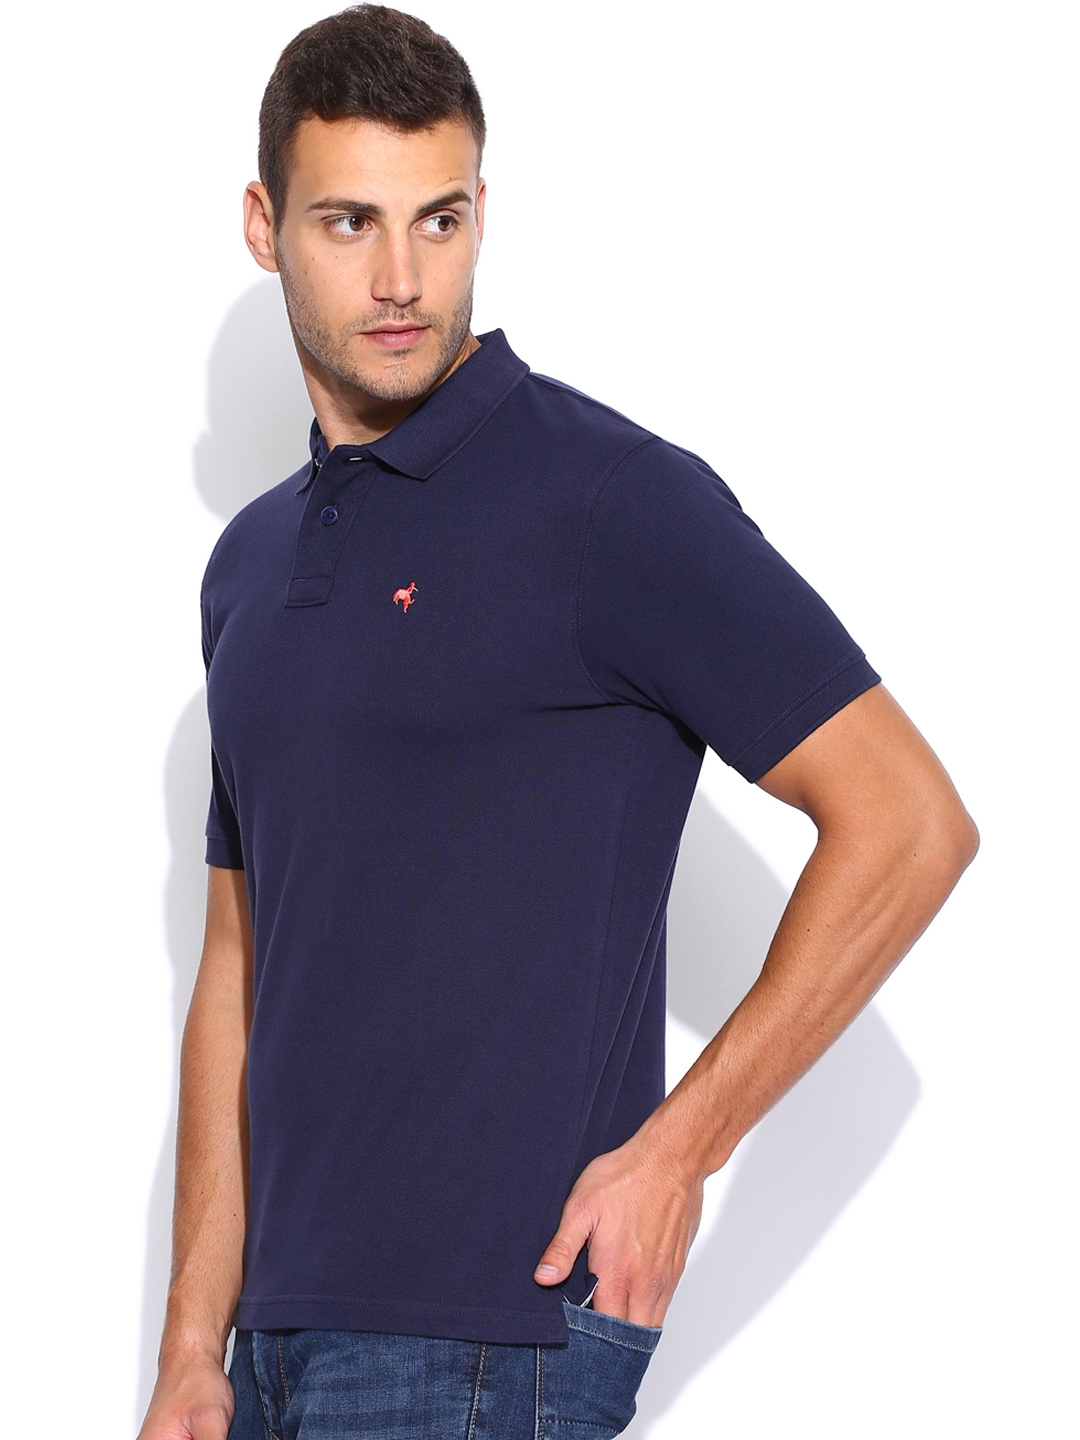 ac657440 Buy Wrangler Navy Polo T Shirt - Tshirts for Men 871103 | Myntra